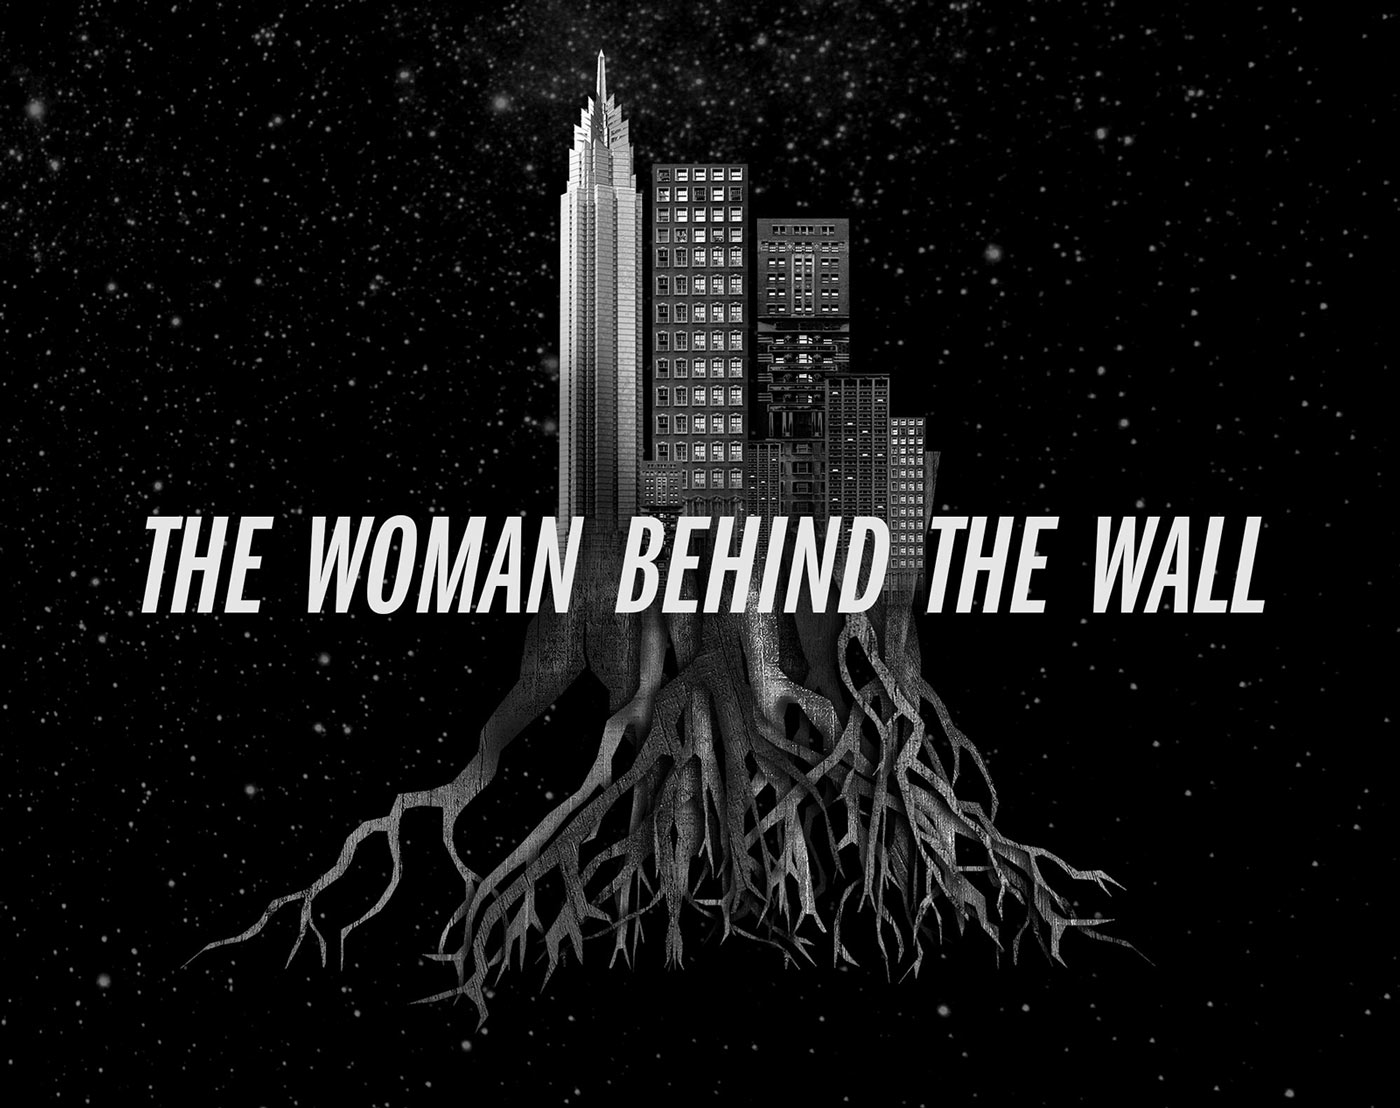 The Woman Behind The Wall